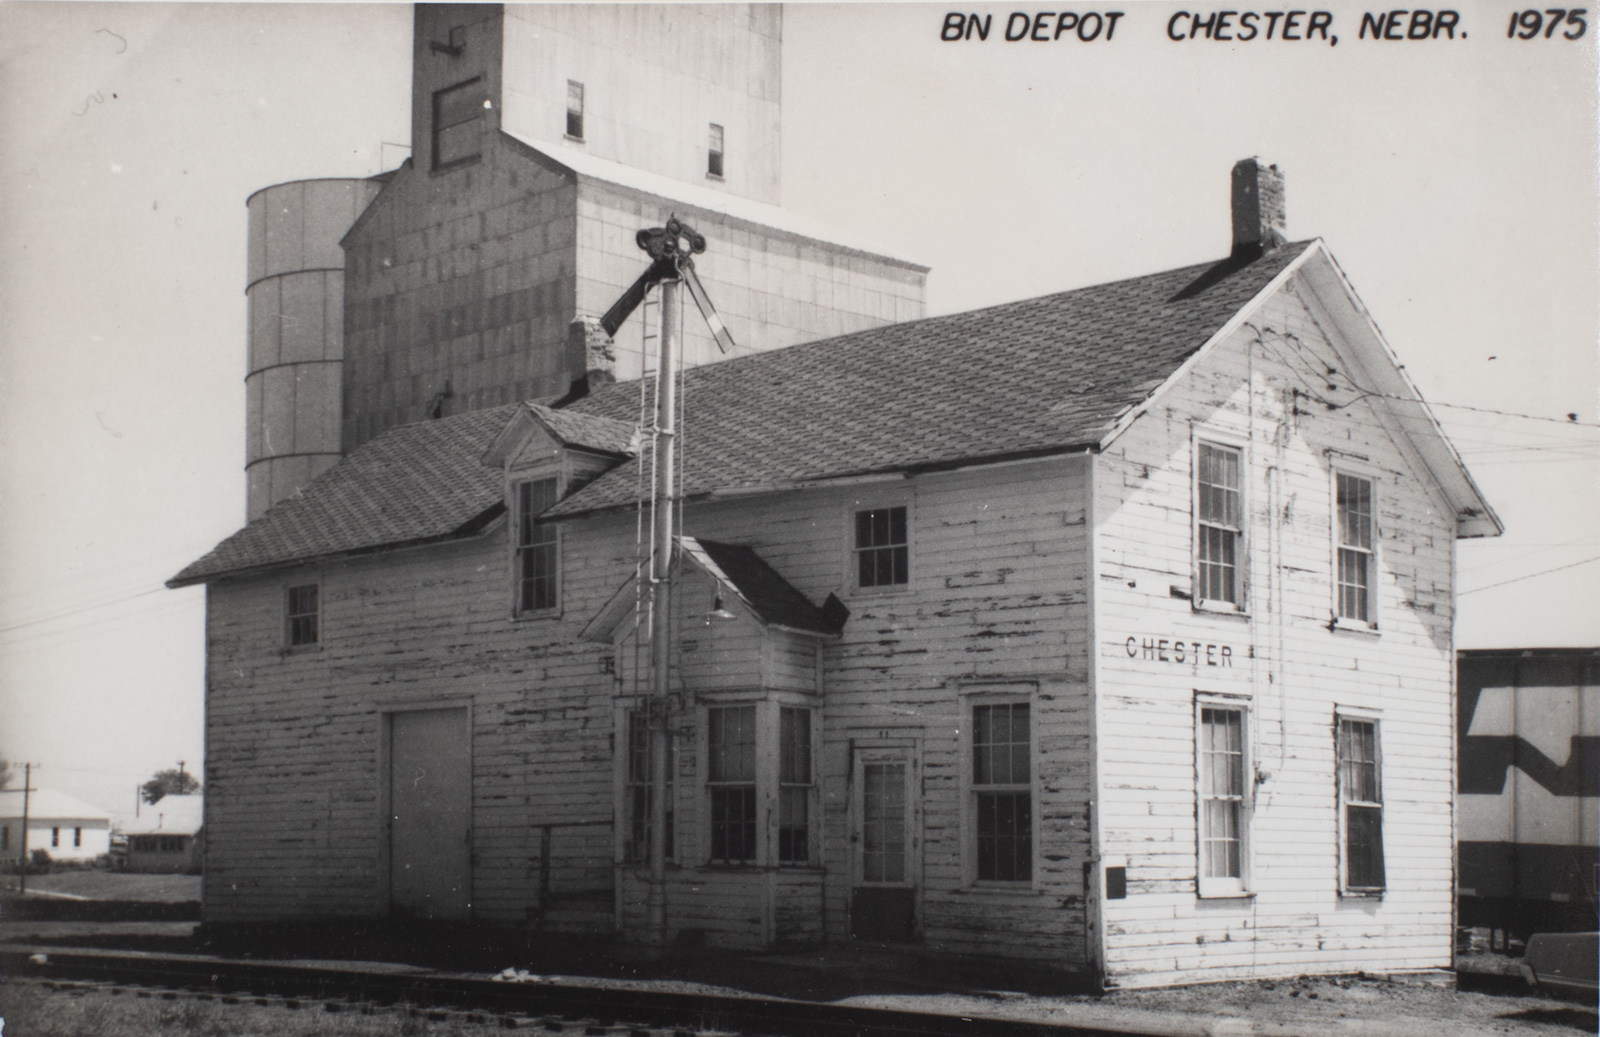 Burlington Northern Depot in Chester Nebraska - 1975 Image